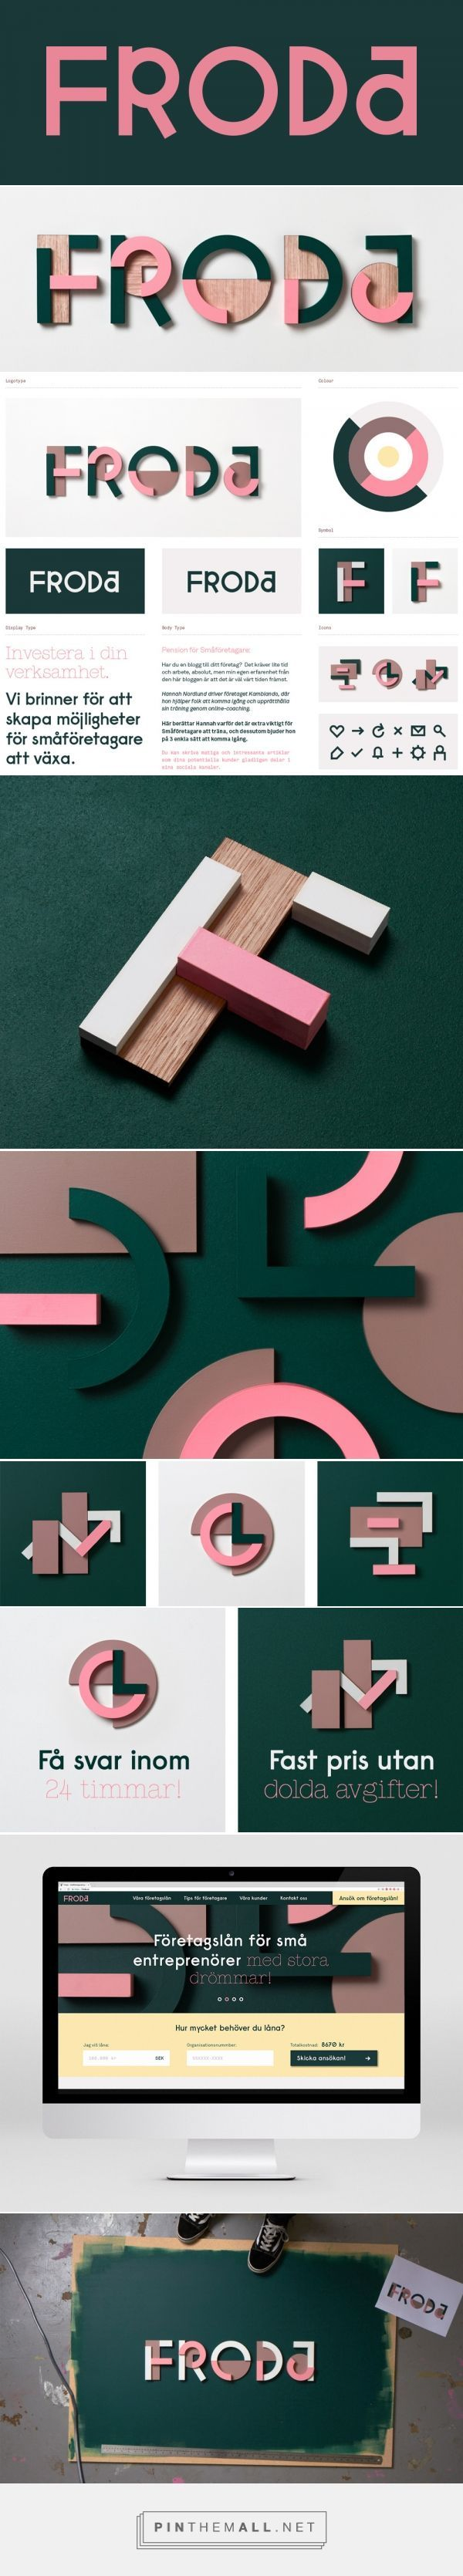 Brand New: New Name, Logo, and Identity for Froda by Snask... - a grouped images picture - Pin Them All